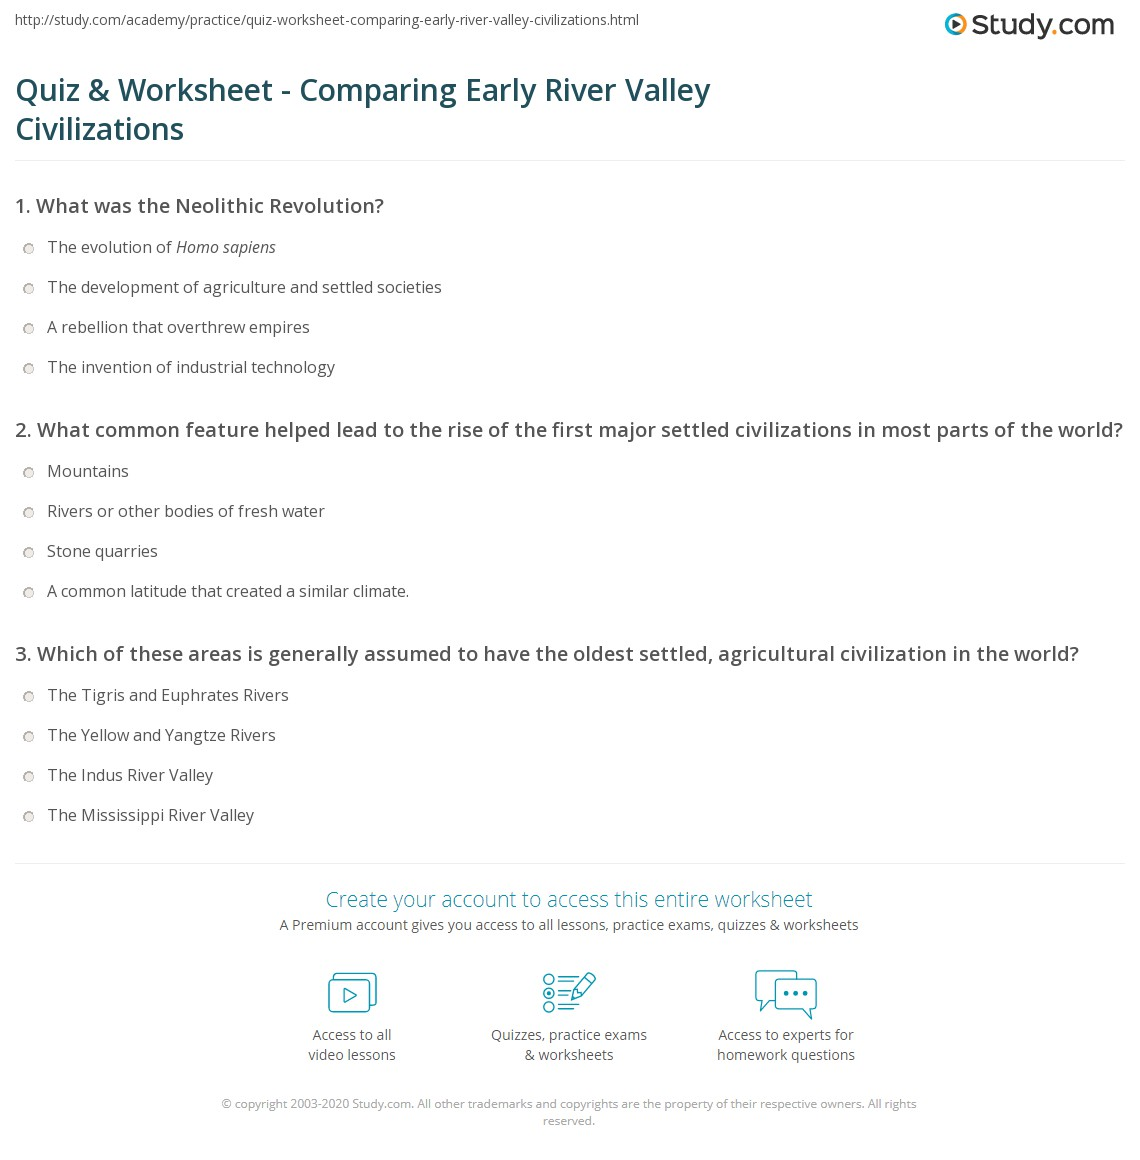 essays on river valley civilizations Strong essays: indus valley civilization in india: notes ostensibly successful was the indus river valley from 2500-1500 bce, and ancient greece from 750-338 bce.